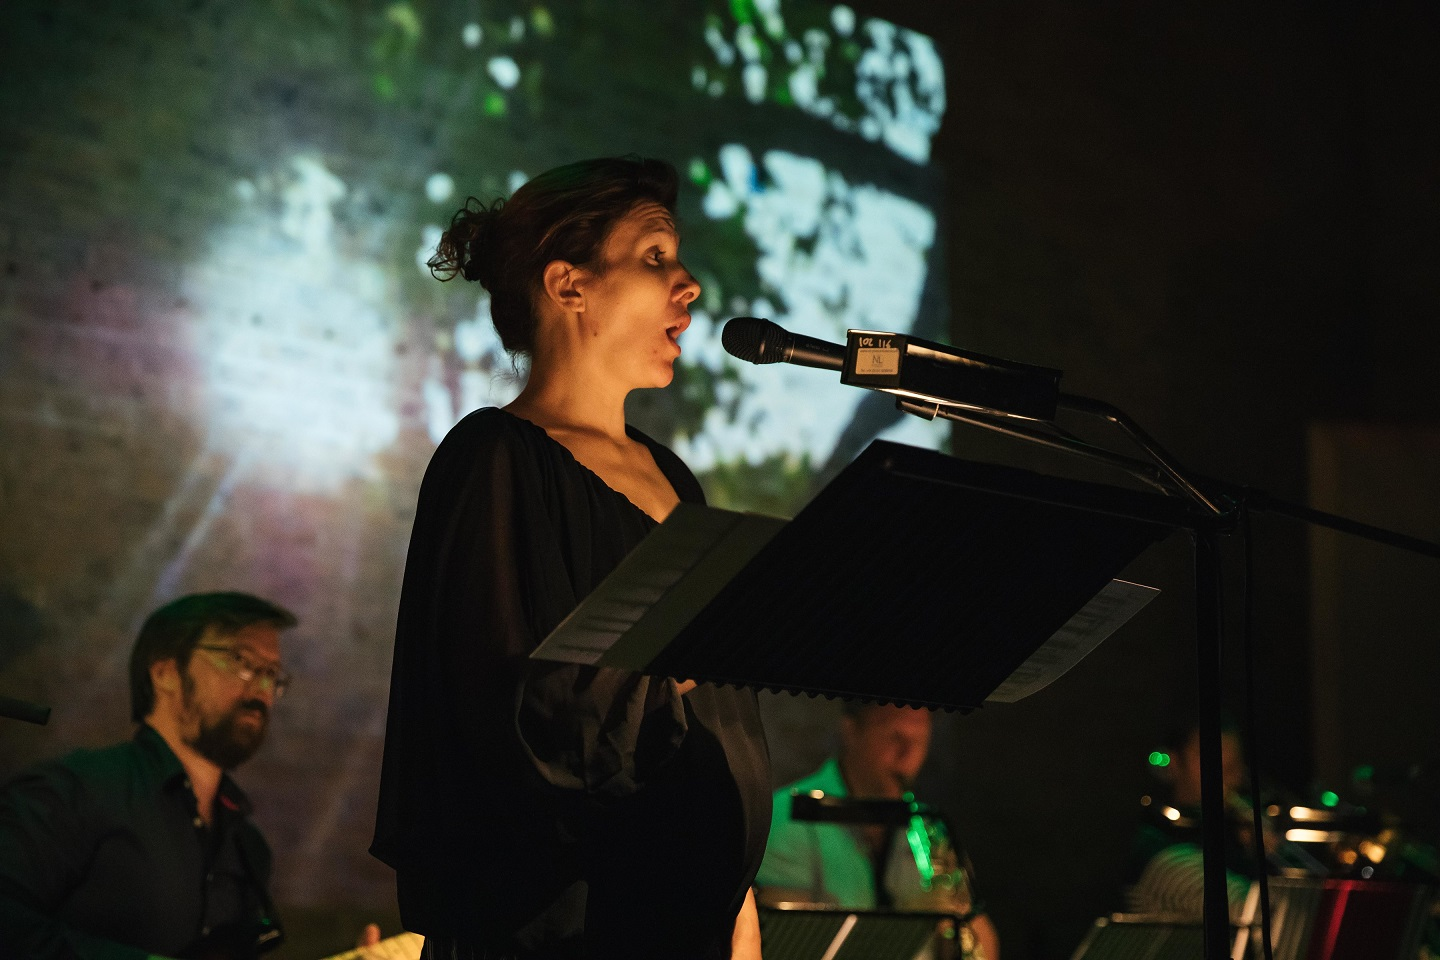 Michaela Riener singing Grim's Ditch with Ensemble Klang by Joel Baldwin